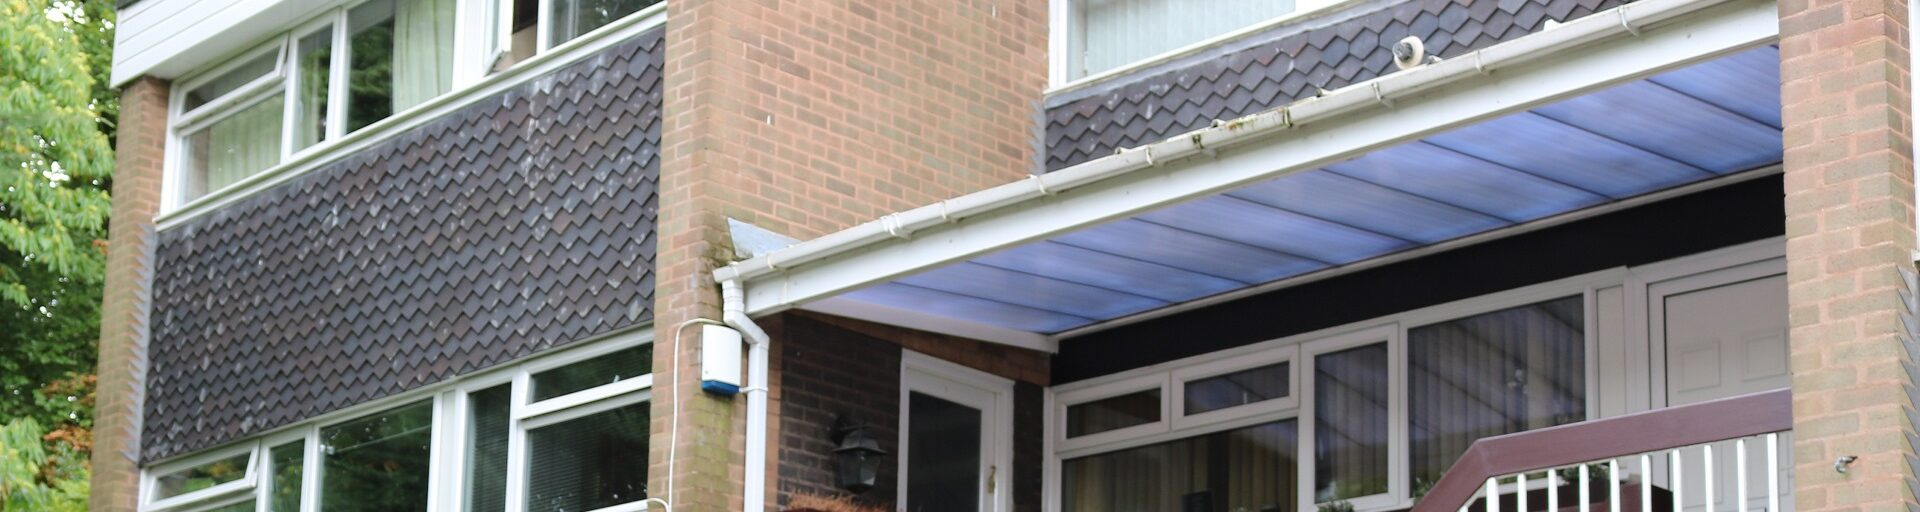 A useful guide to gutters and downspouts